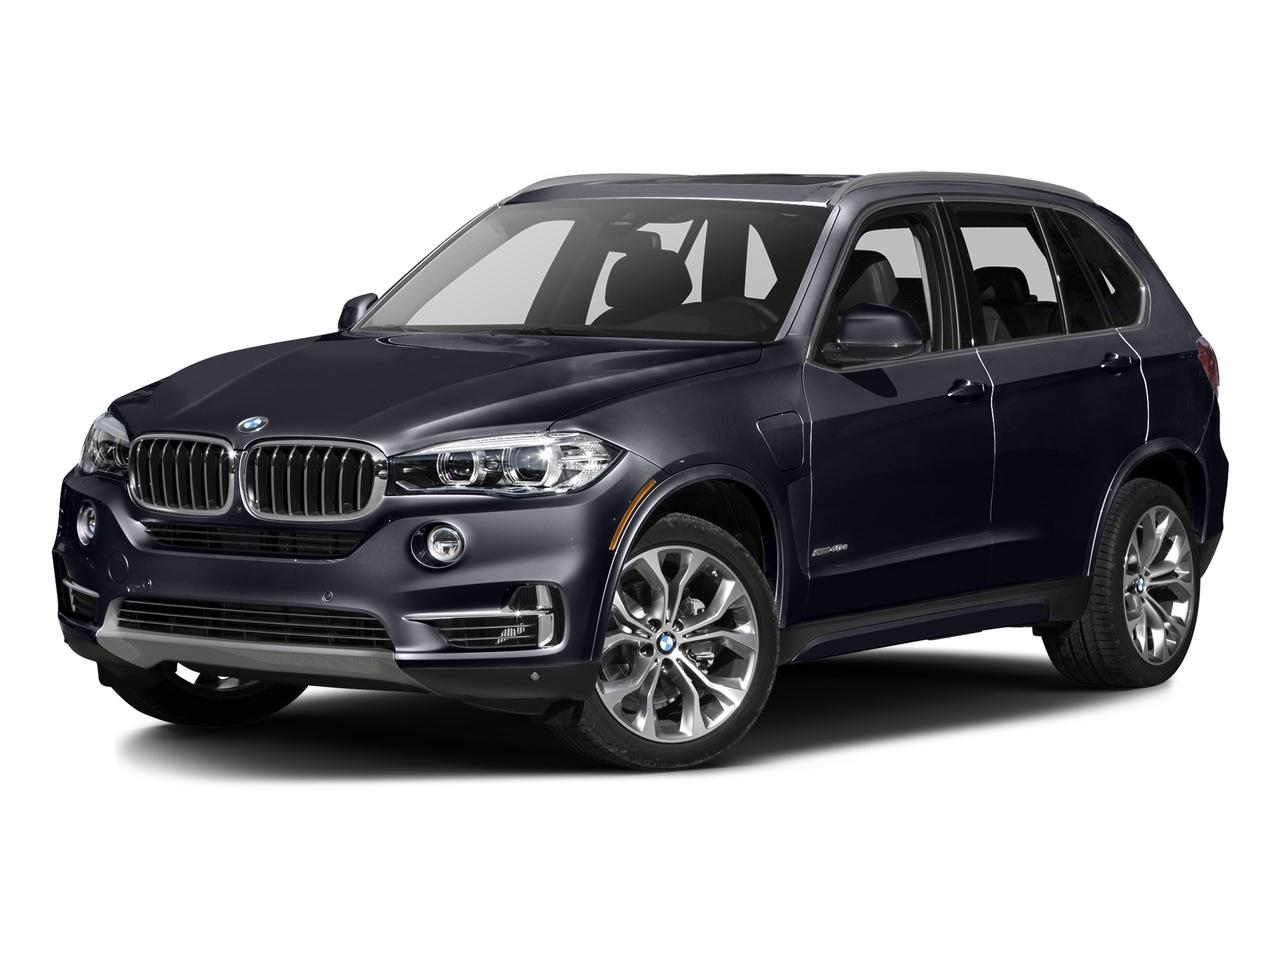 2016 BMW X5 xDrive40e Vehicle Photo in Arlington, TX 76011